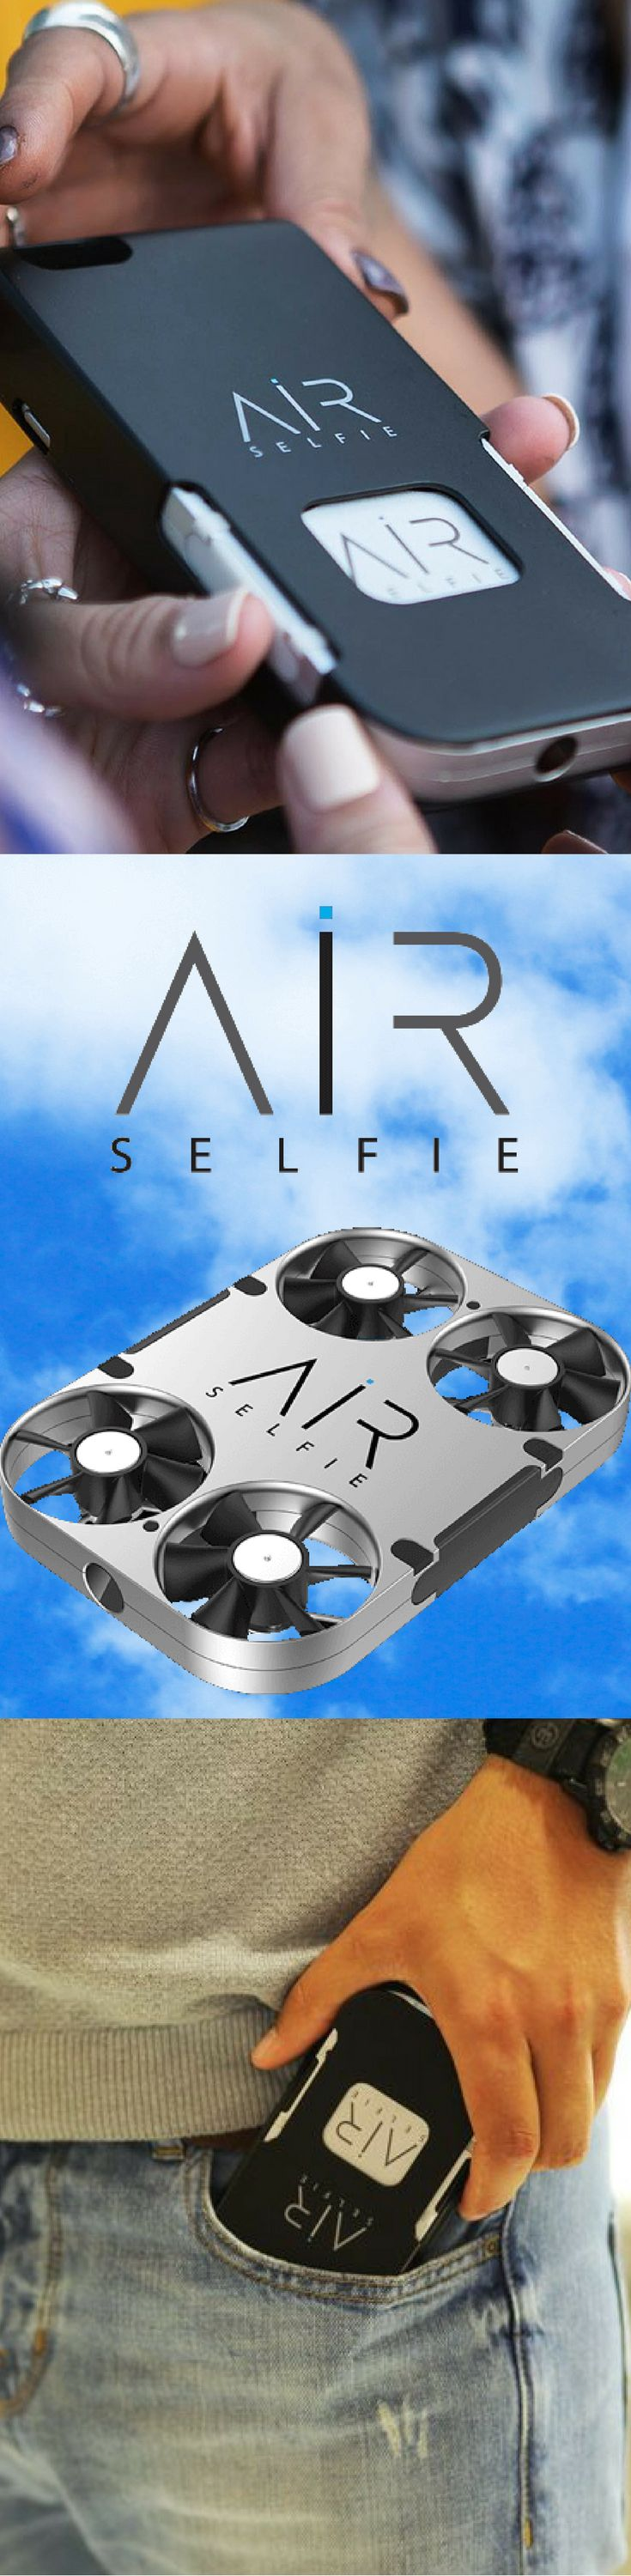 AirSelfie! Your Personal Pocket Drone. Take it everywhere with you.. The size of an Iphone or Samsung S7 edge, Take a selfie at the dinner table or out at lunch with friend... The drone that goes everywhere with you! Available Now on Amazon!